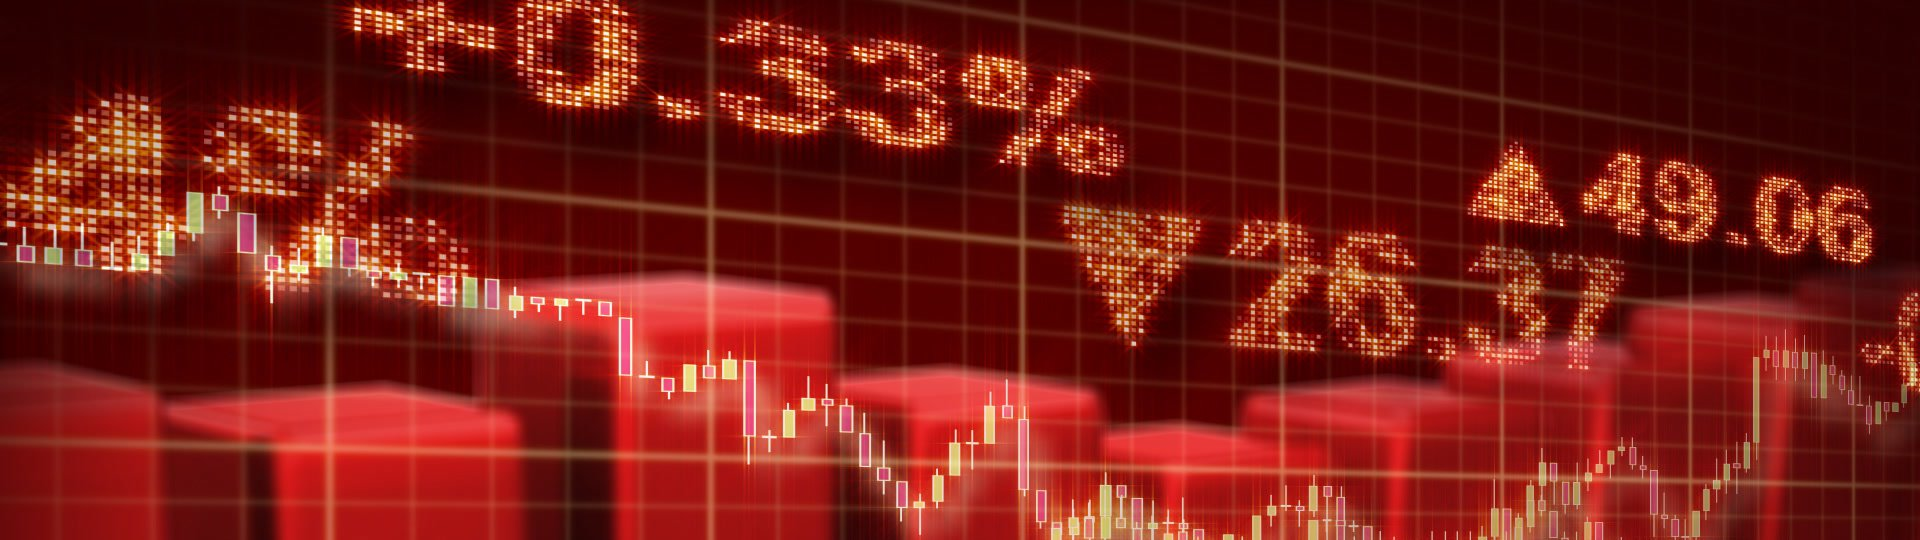 Stock market red loopable business background | computer generated red seamless loop business stock market background. Progressive scan. - ID:12243